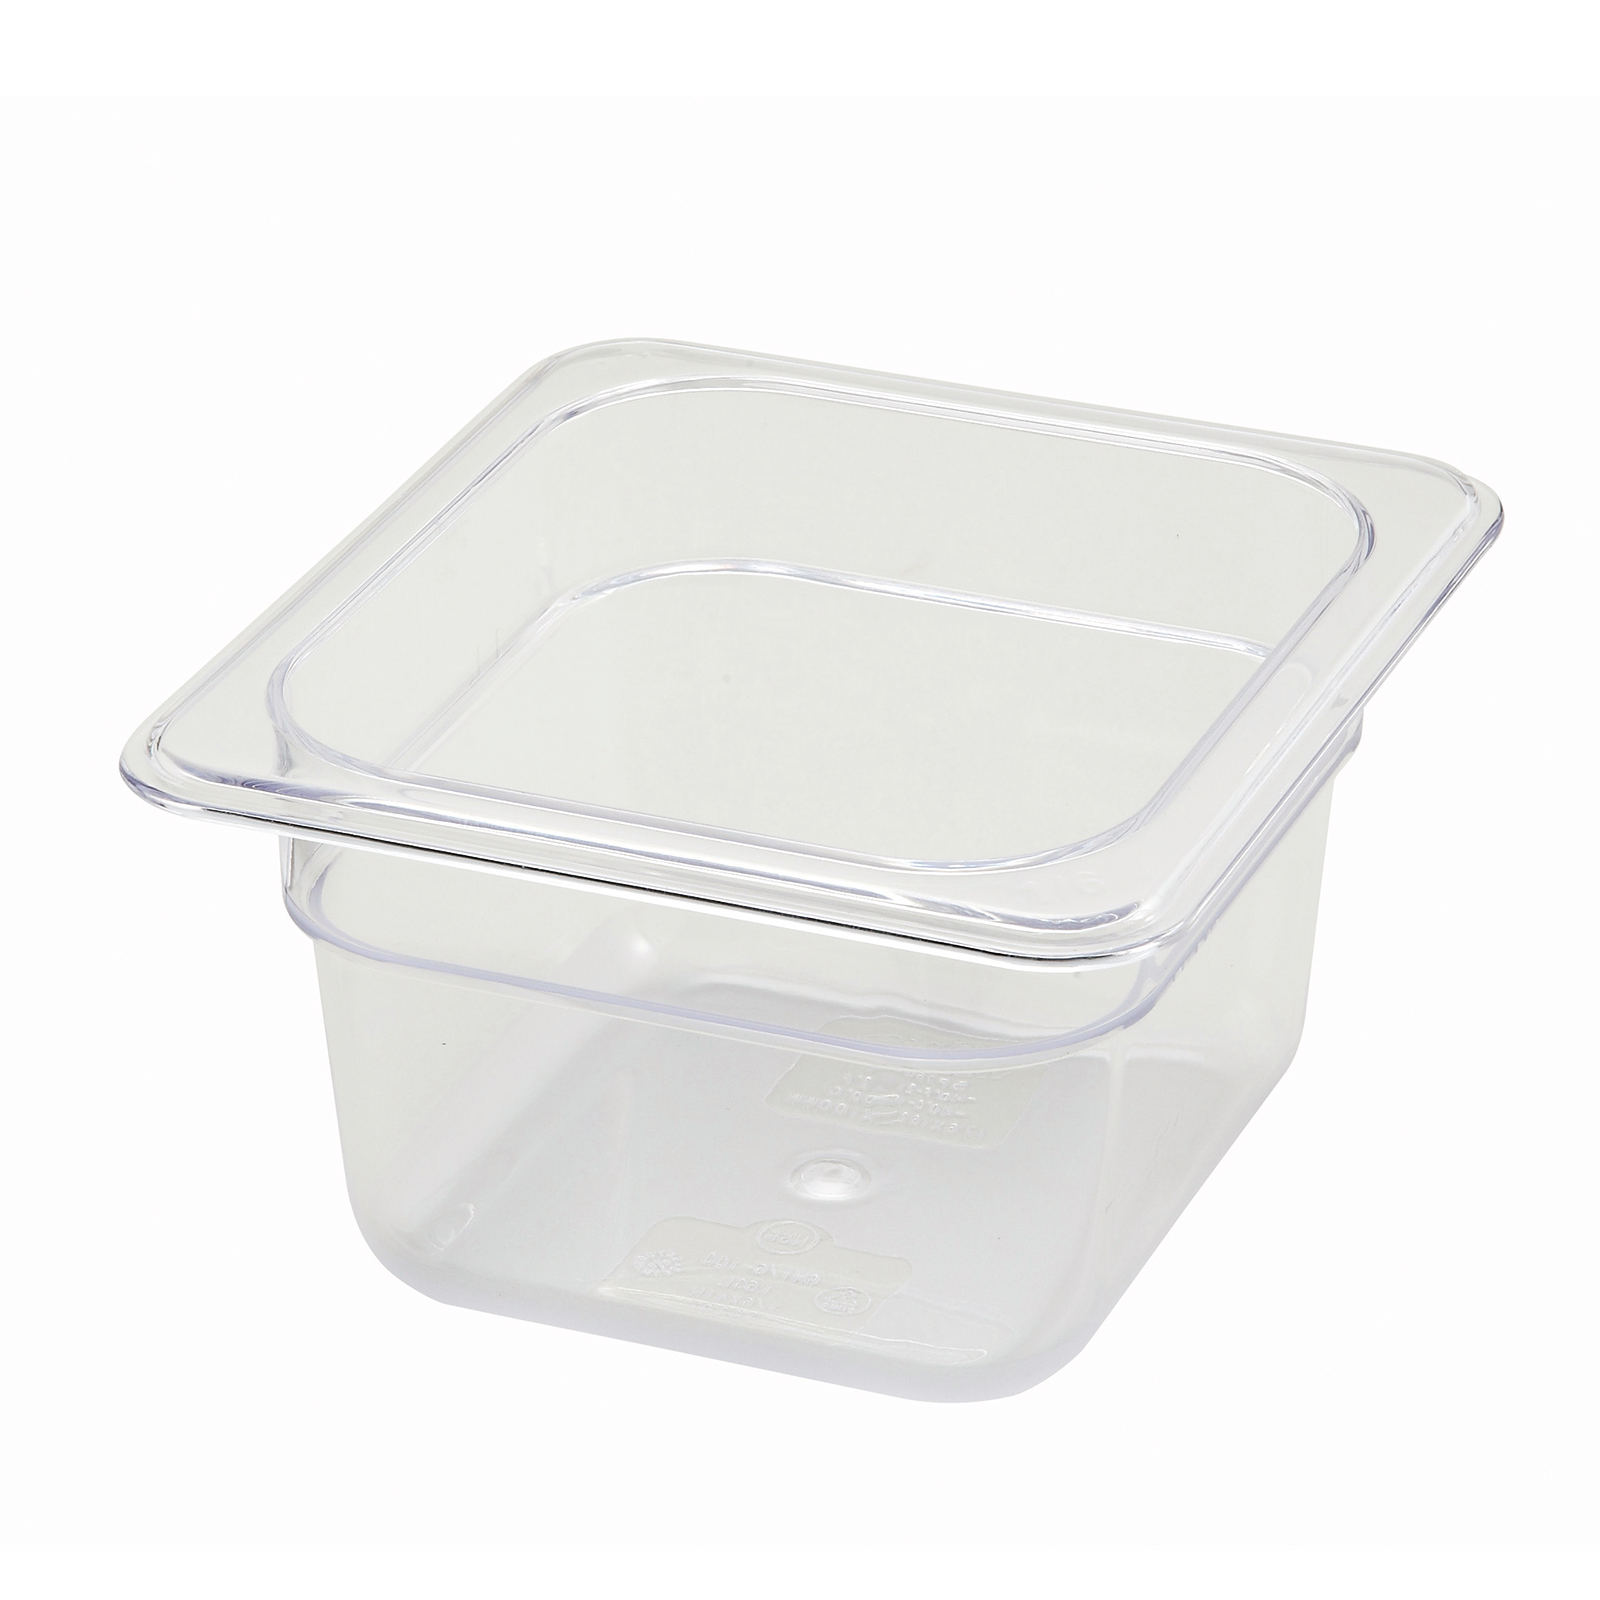 Winco SP7604 food pan, plastic